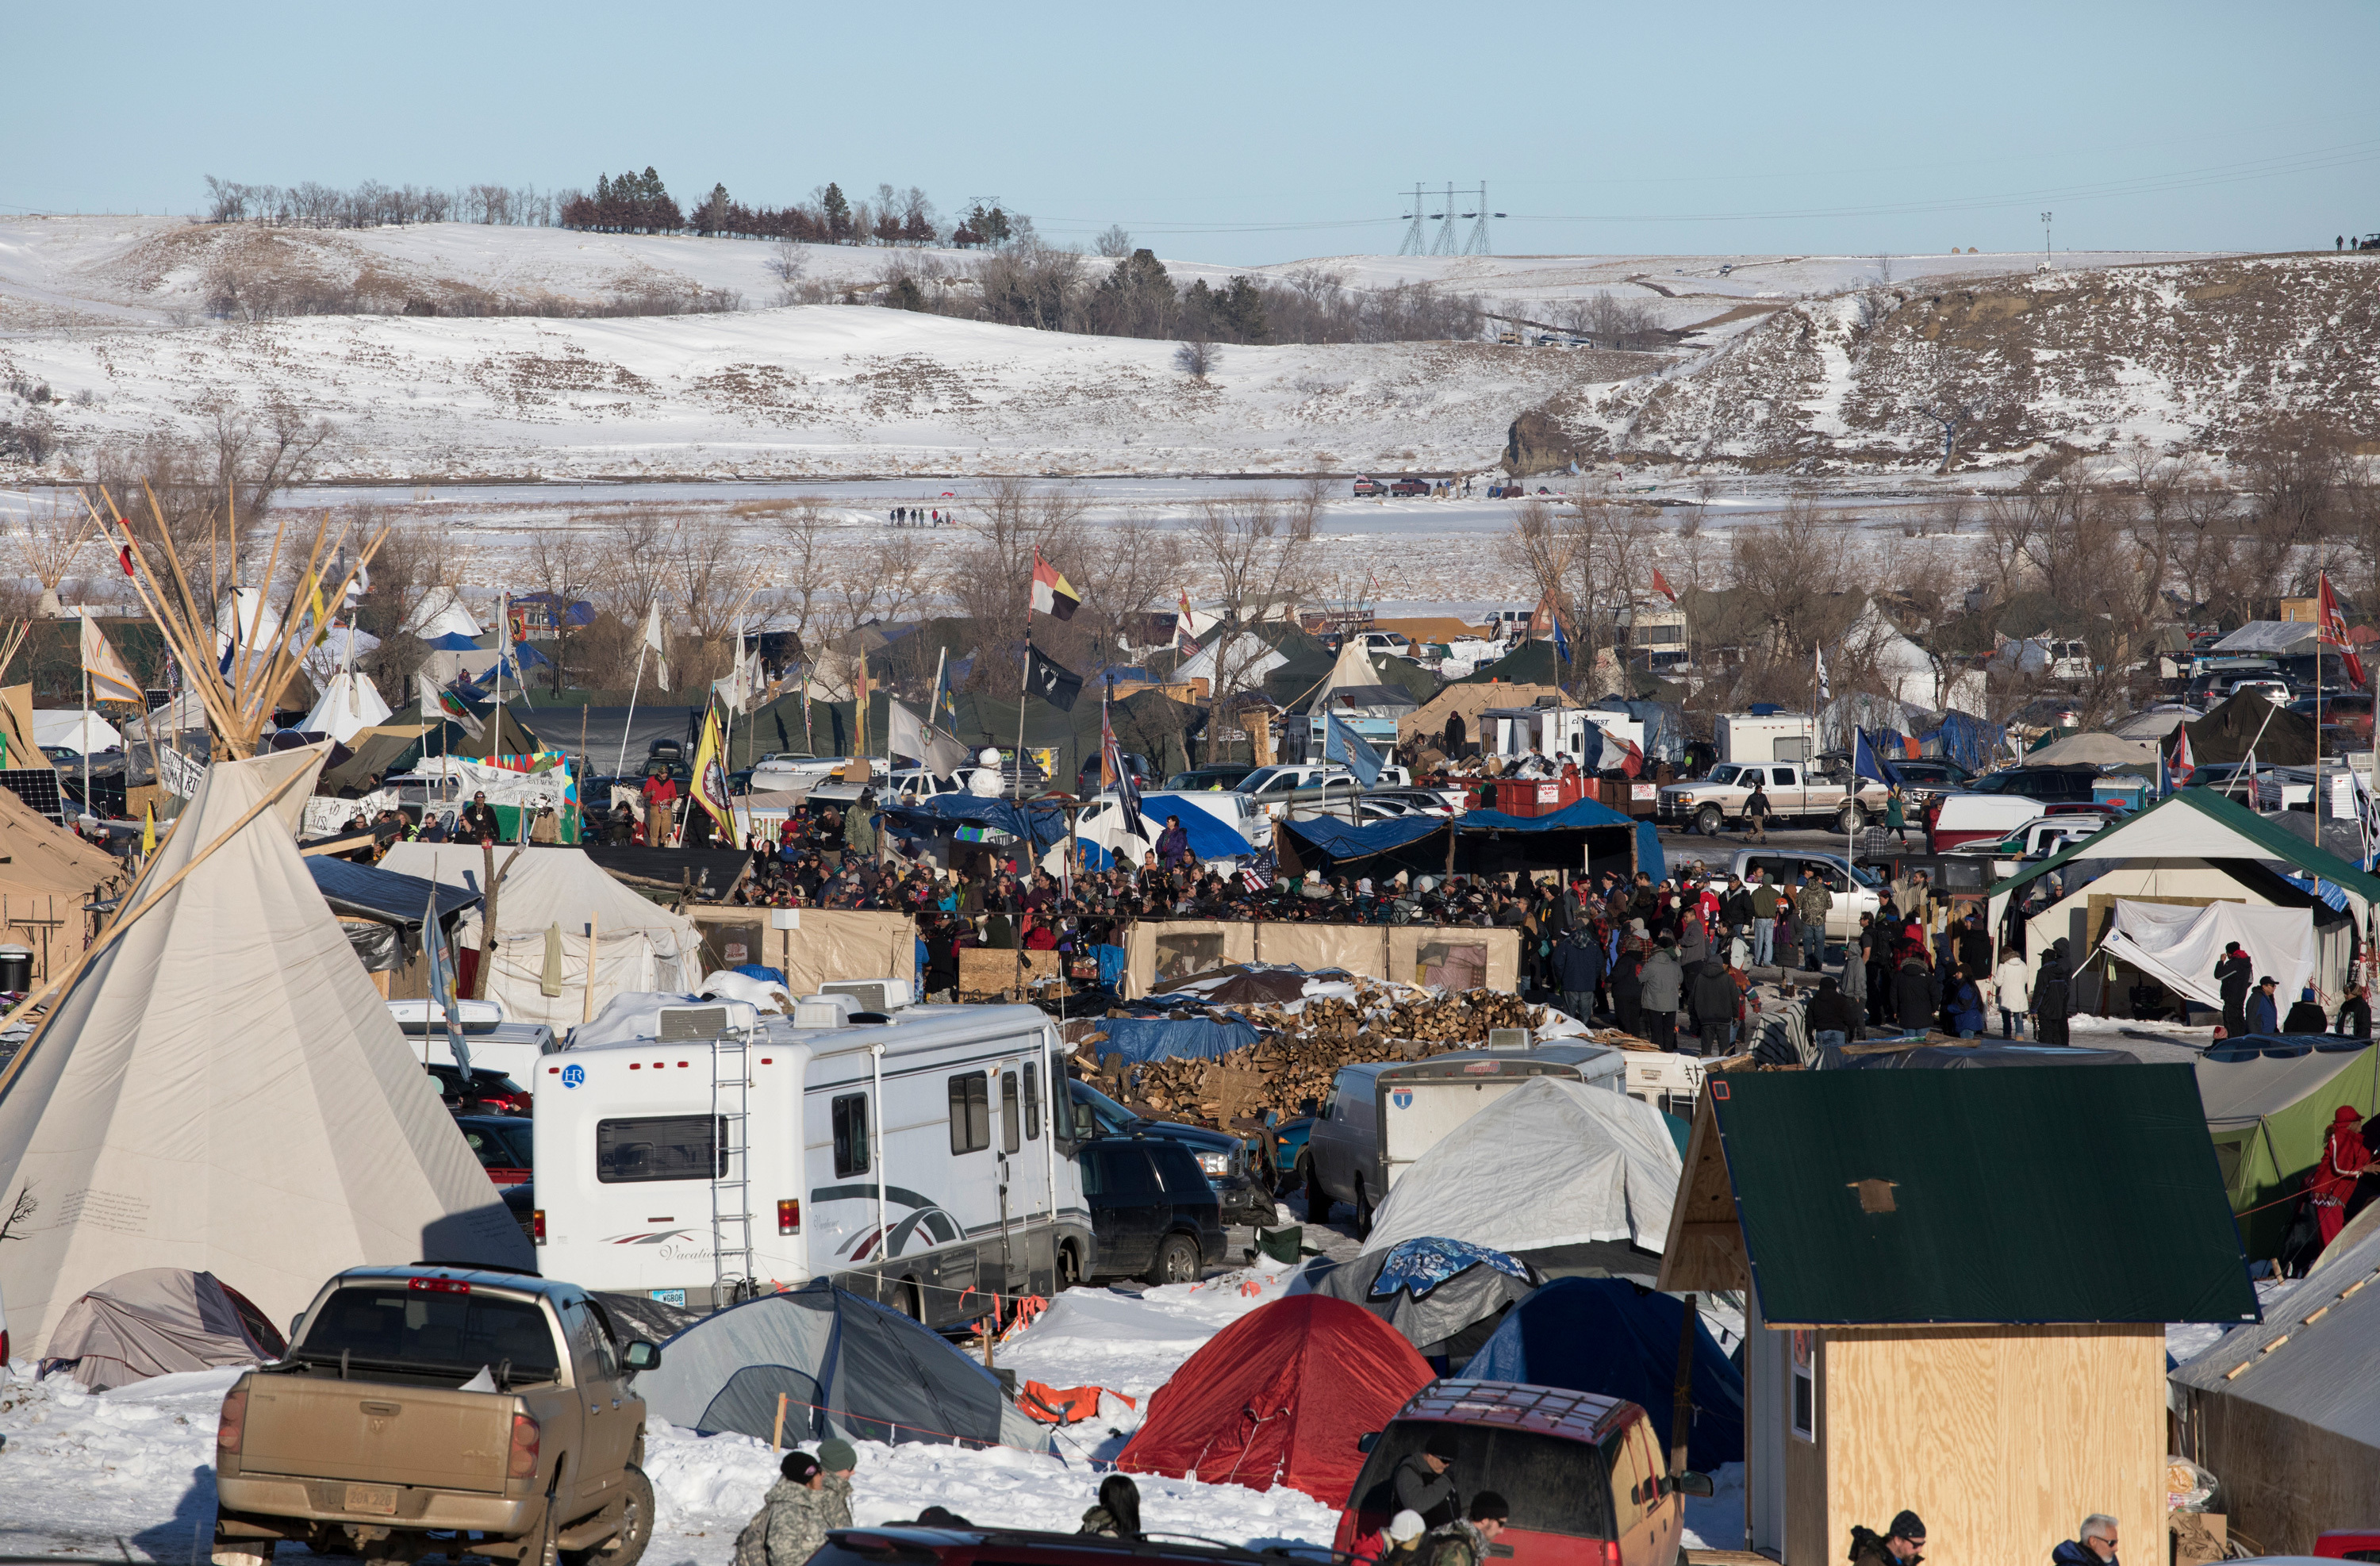 On Sunday, protesters gather at their camp as news breaks that the Army Corps of Engineers will not approve an easement for the Dakota Access Pipeline. (Photo by Cassi Alexandra for NPR)